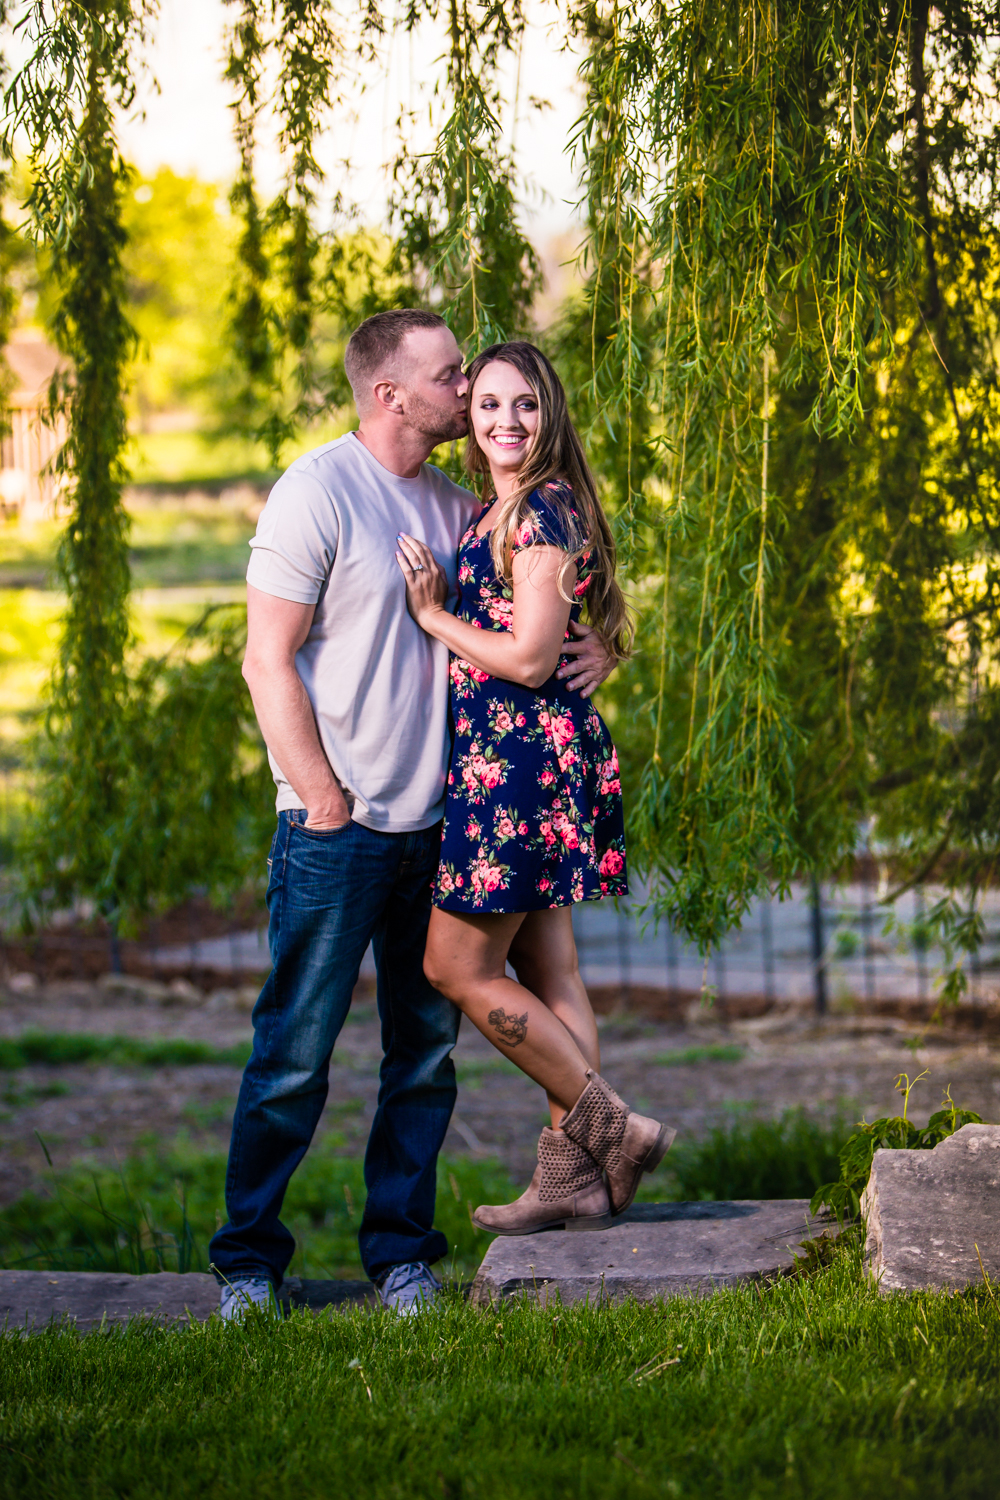 Engagments with willow tree at Sandstone Ranch. Take by Jared M. Gant